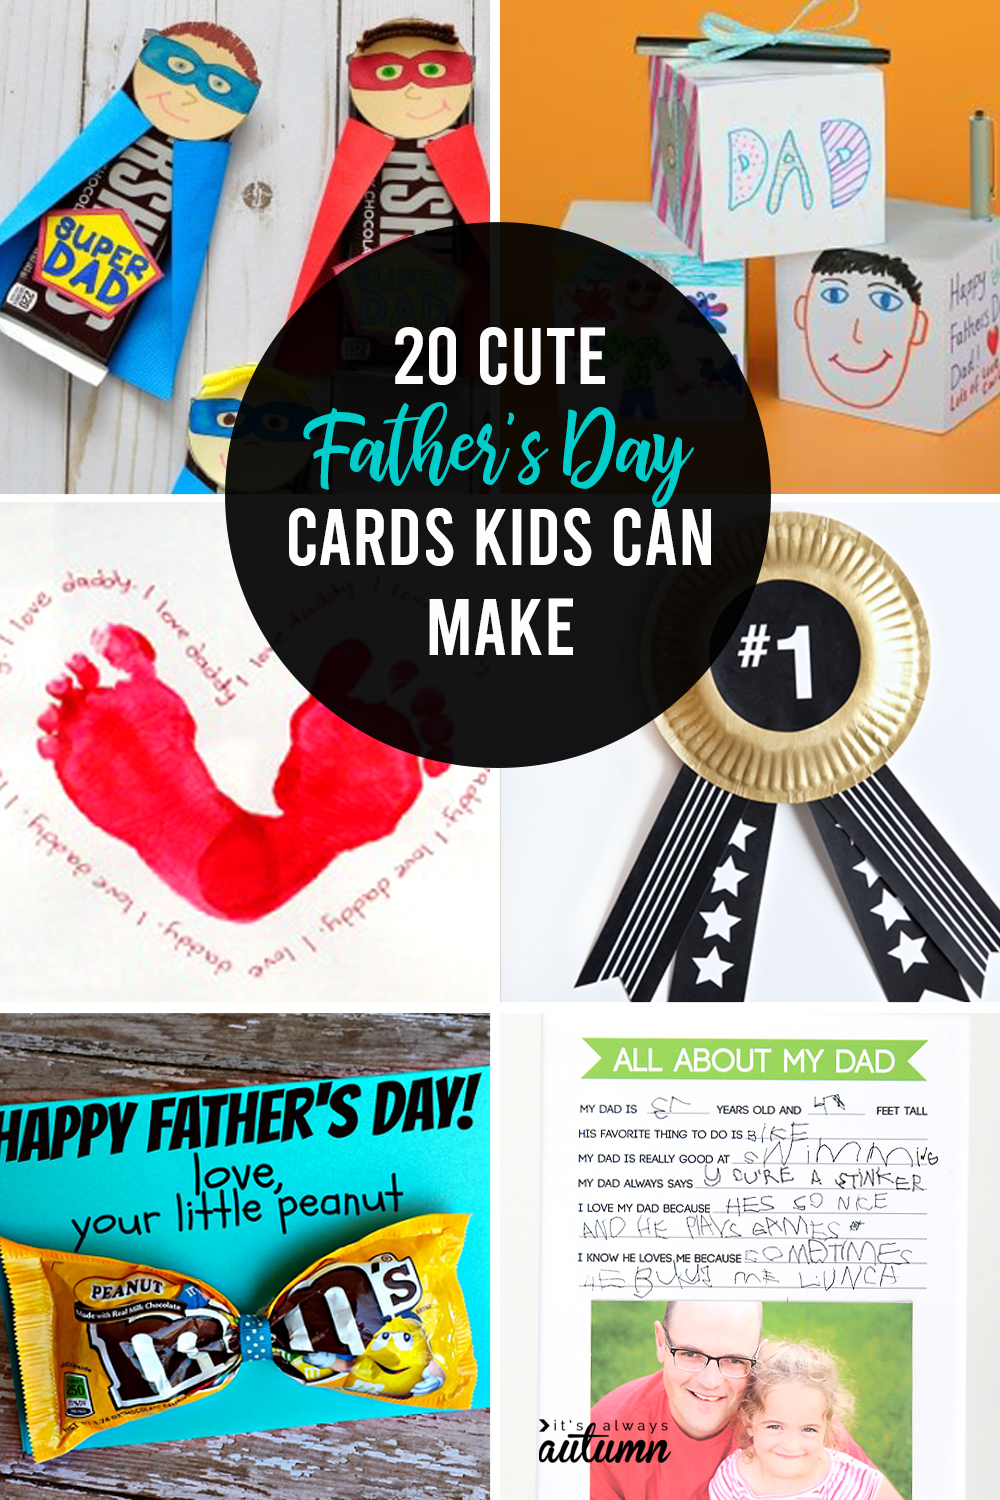 20 cute Father's Day card ideas for kids to make!